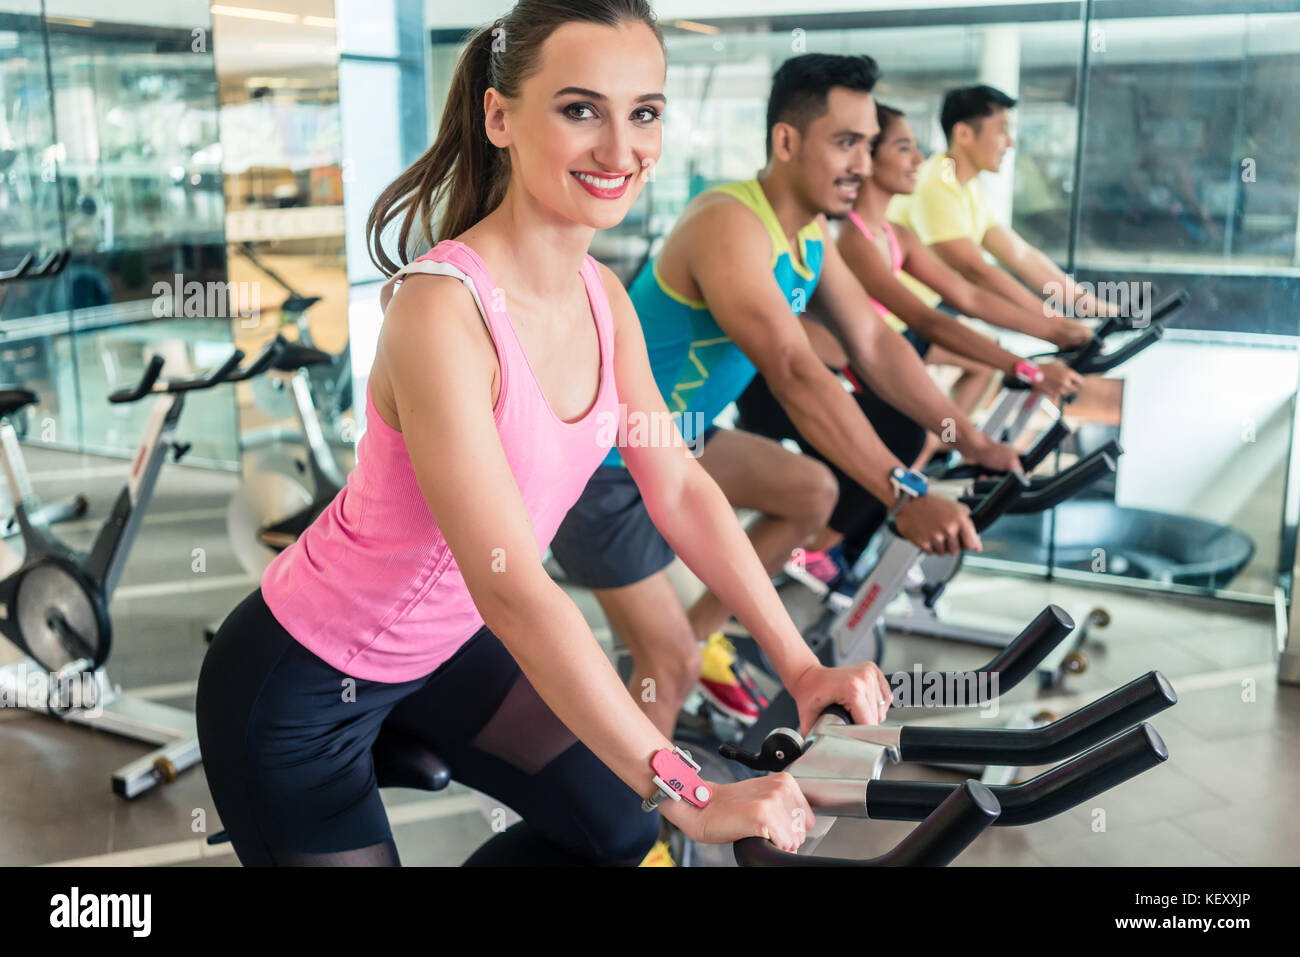 Beautiful fit woman smiling during cardio workout at indoor cycl - Stock Image